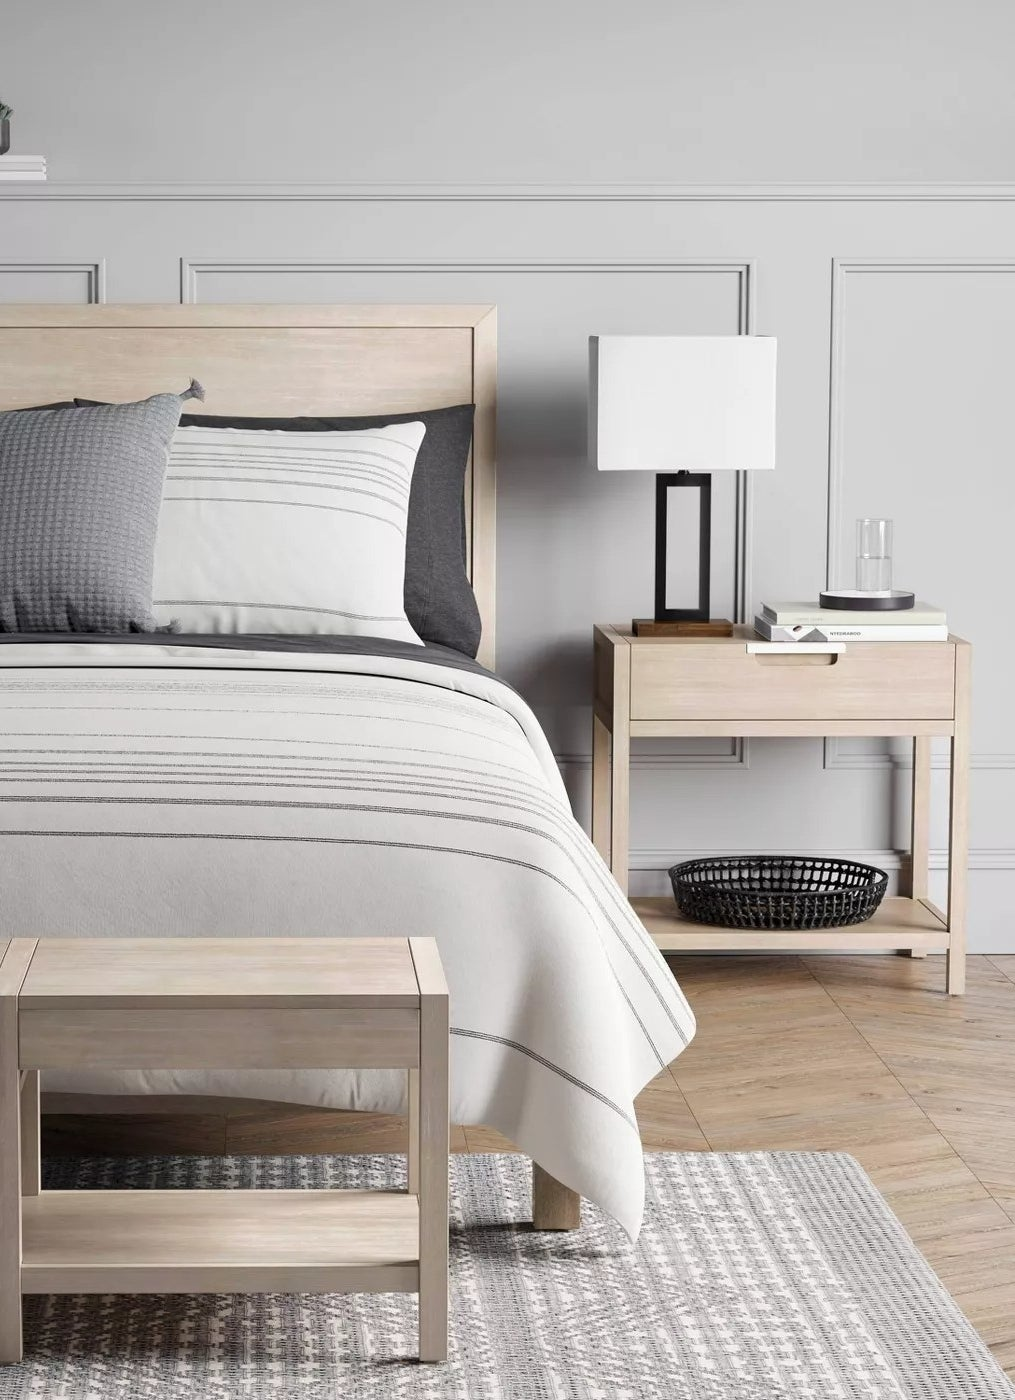 The nightstand with a drawer and open shelf underneath in a bedroom